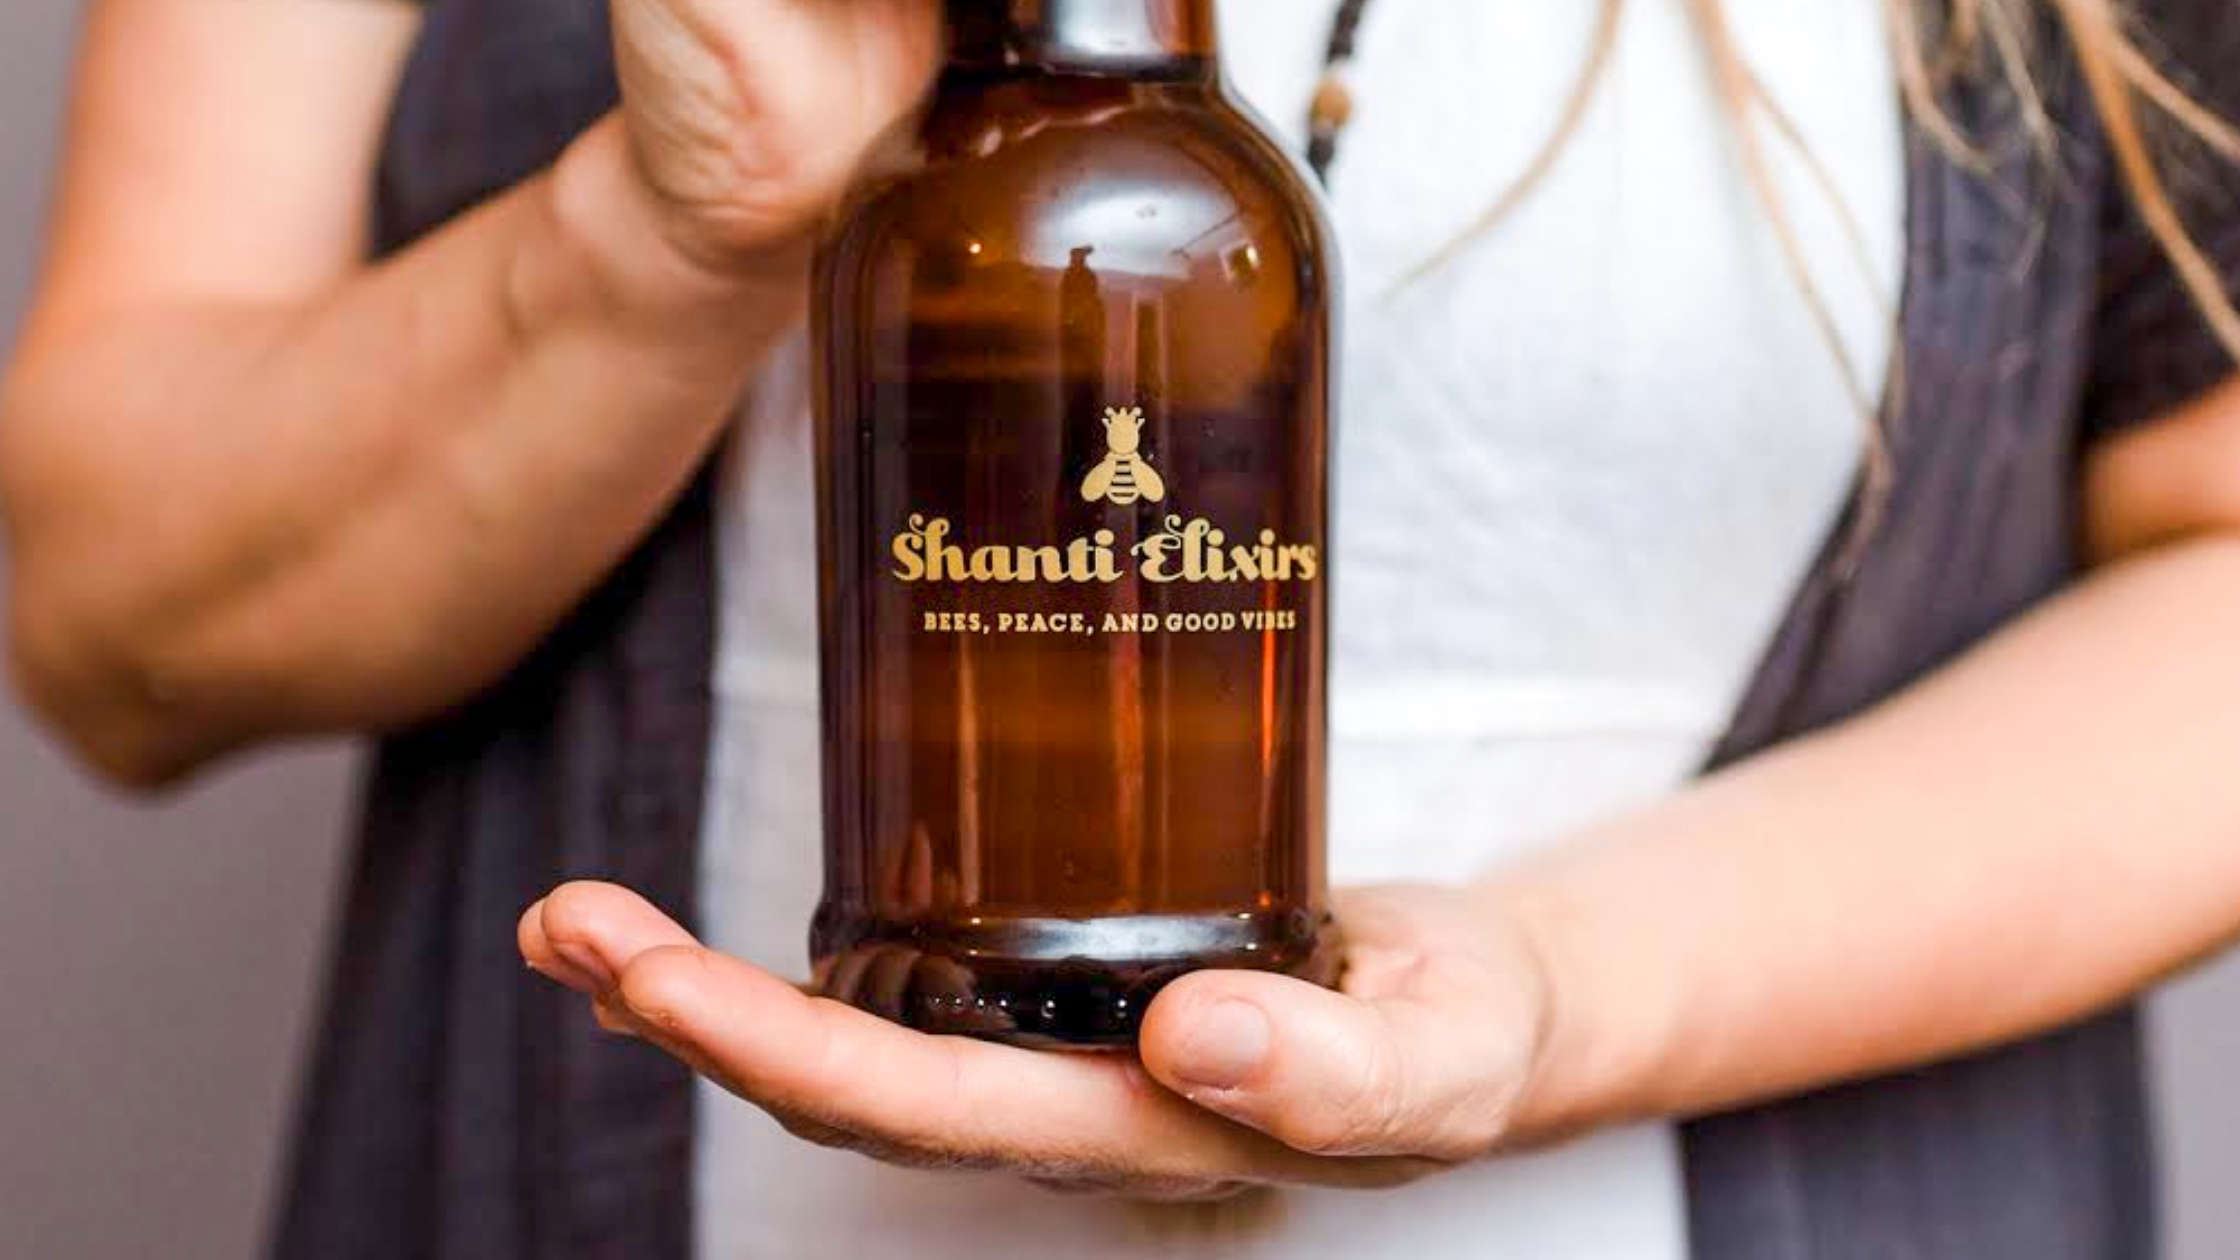 person holding a mini growler of Shanti Jun